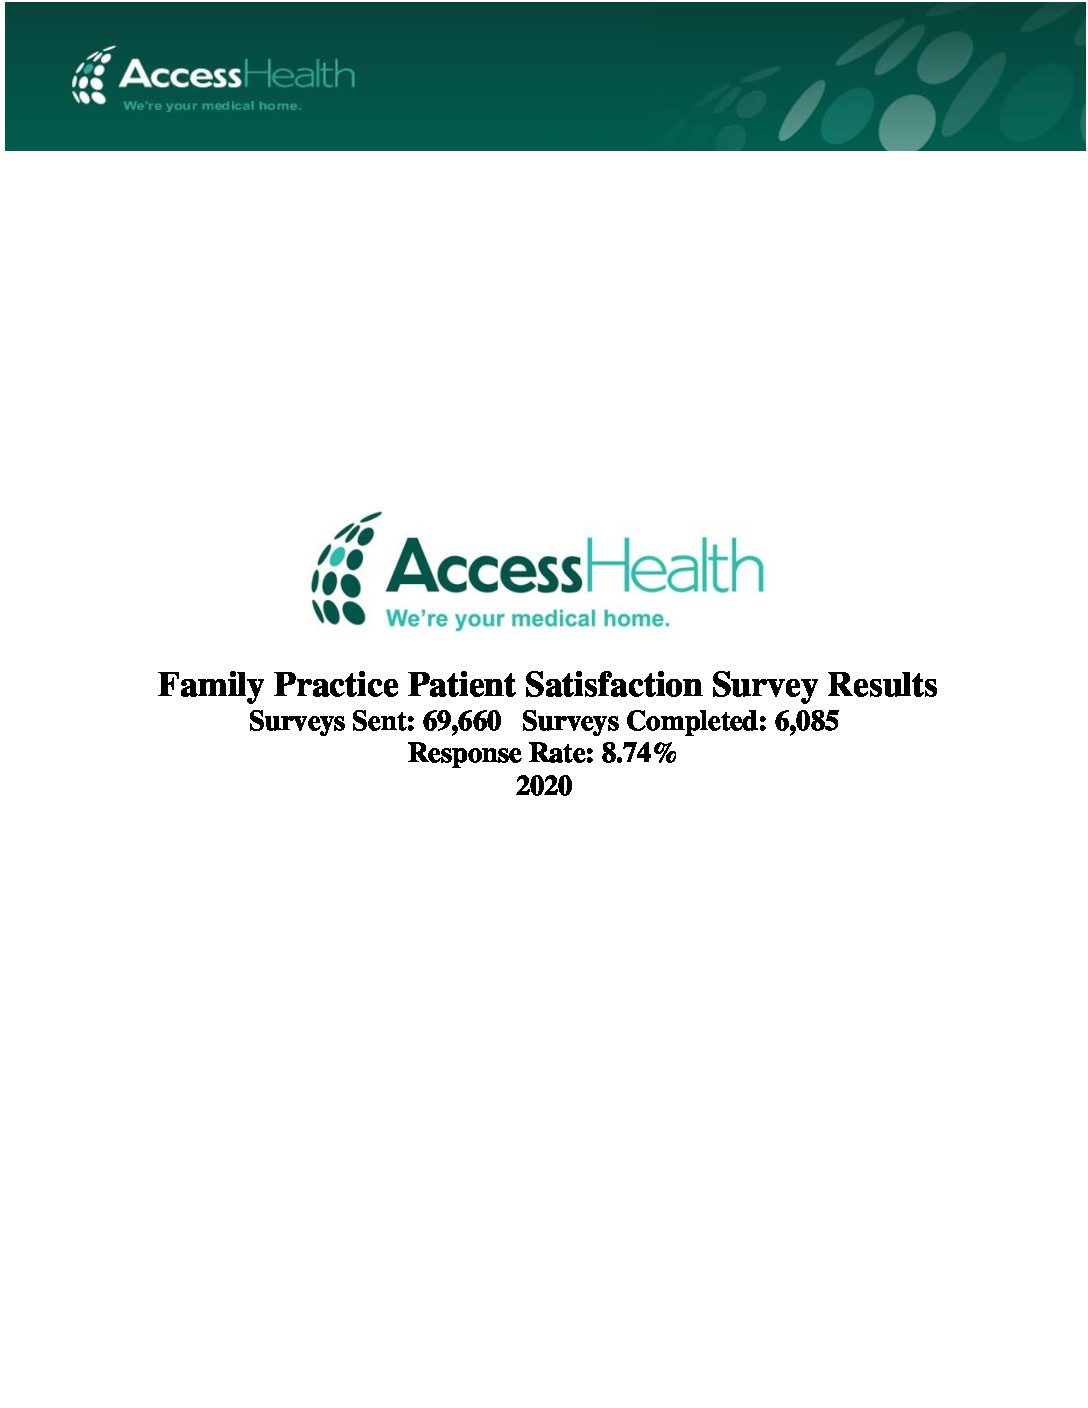 2020 Family Practice Patient Satisfaction Survey Results